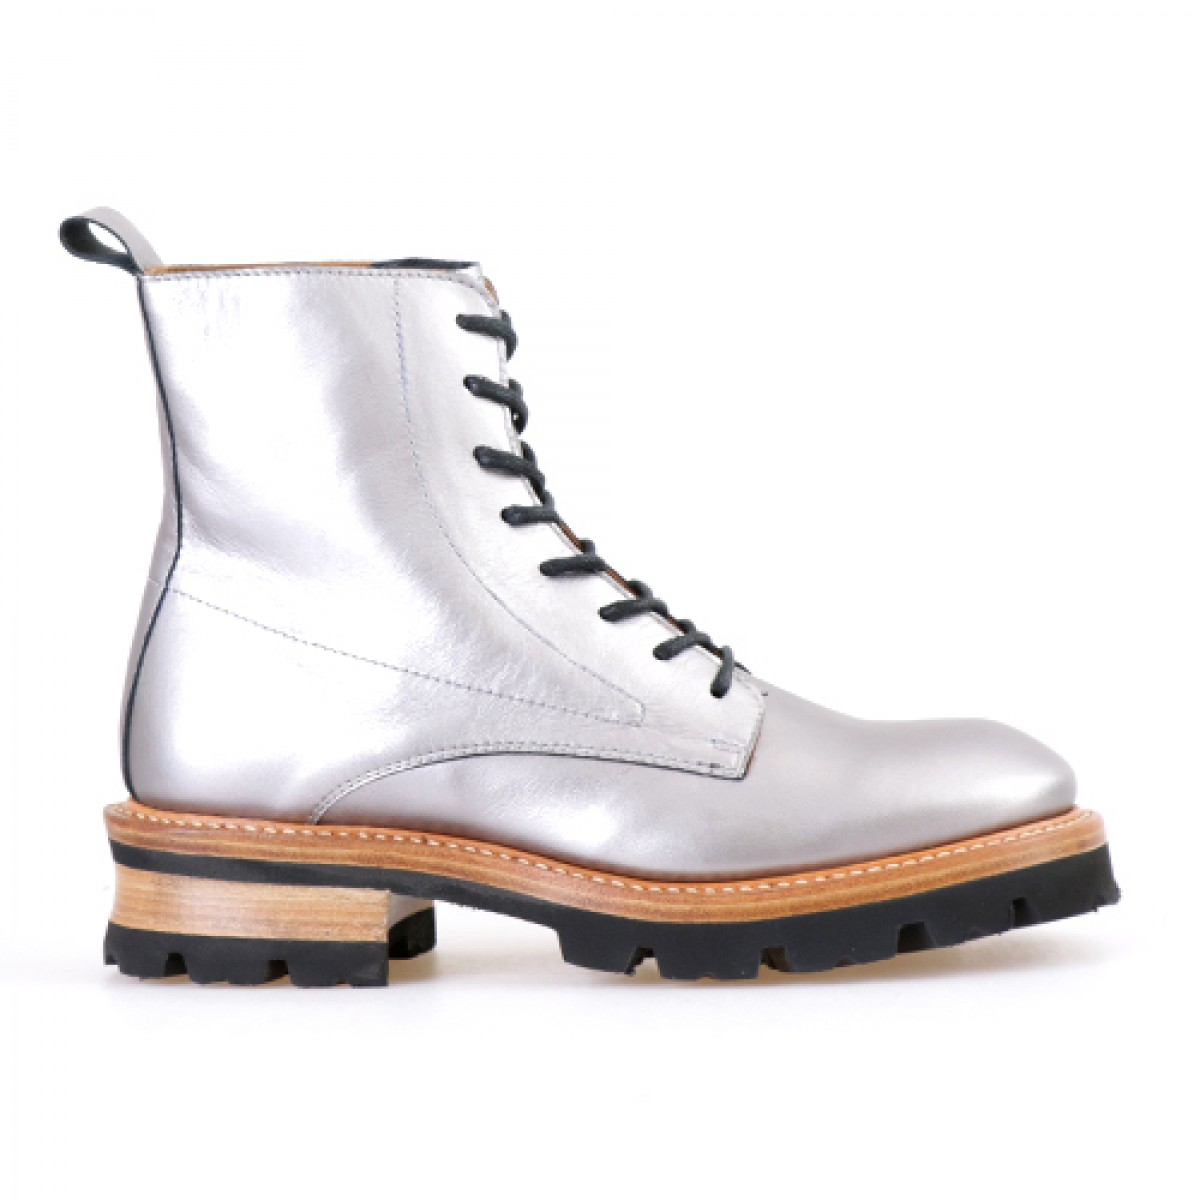 CAPPELLETTI MID BOOT LACES